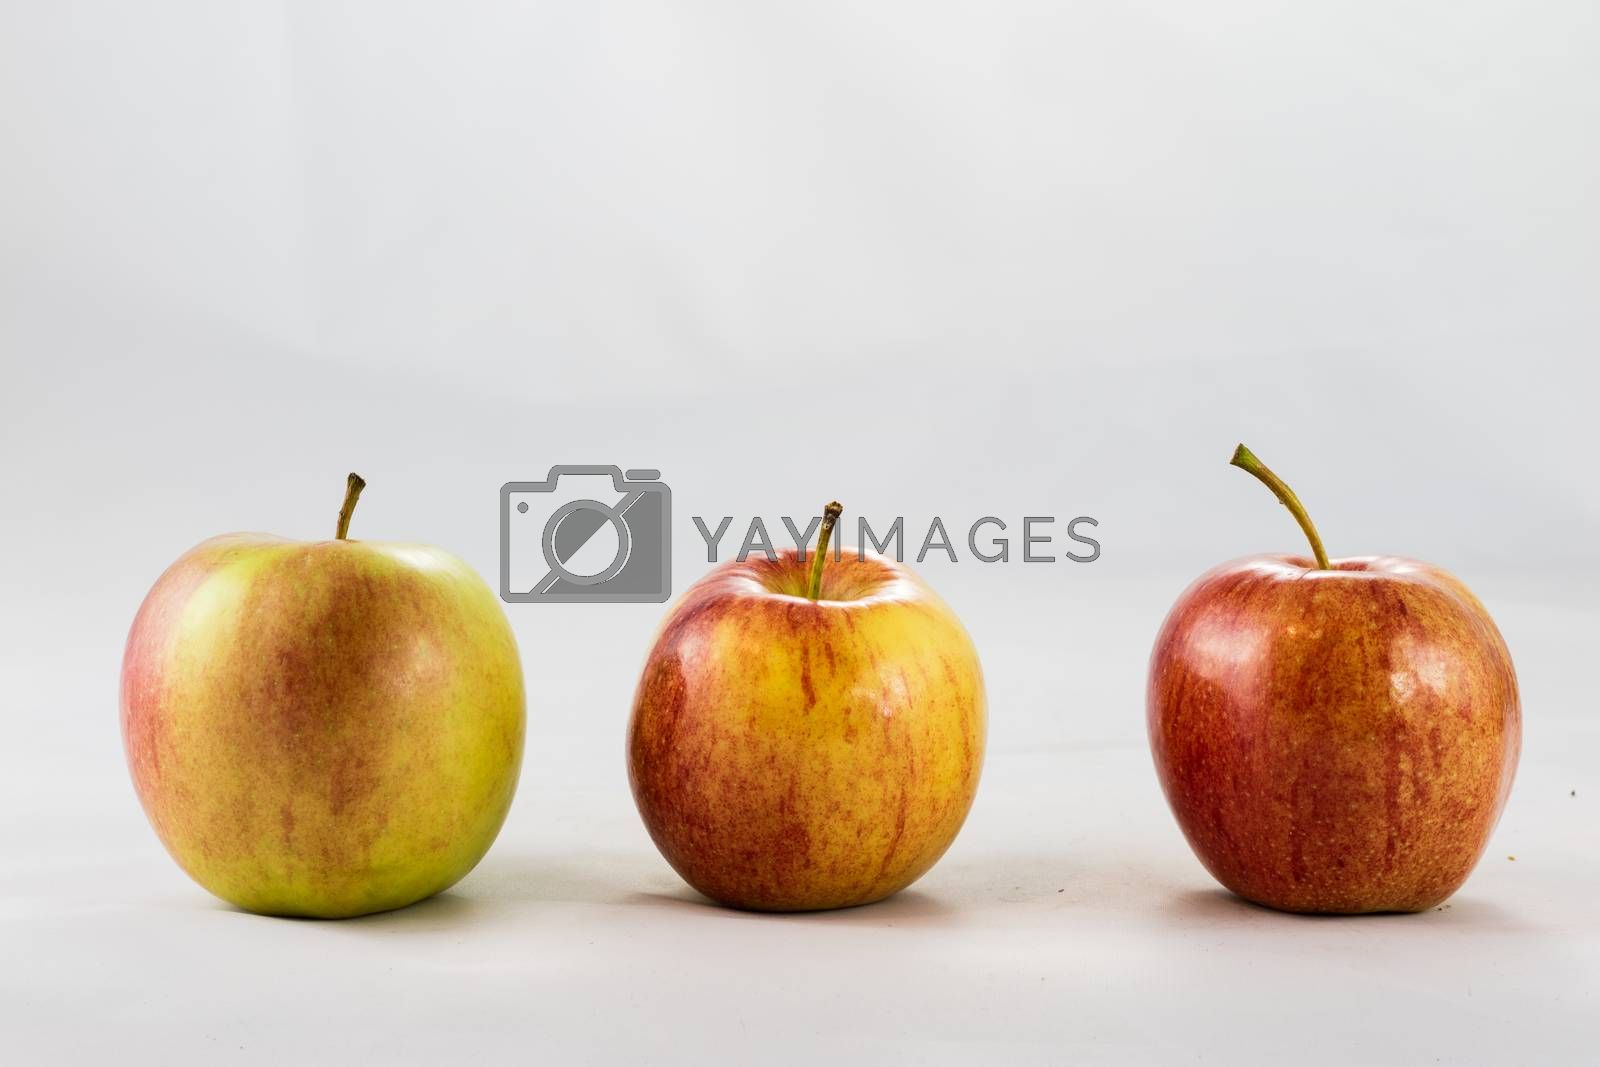 Tasty, delicious ripe apples on a white background by wytrazek